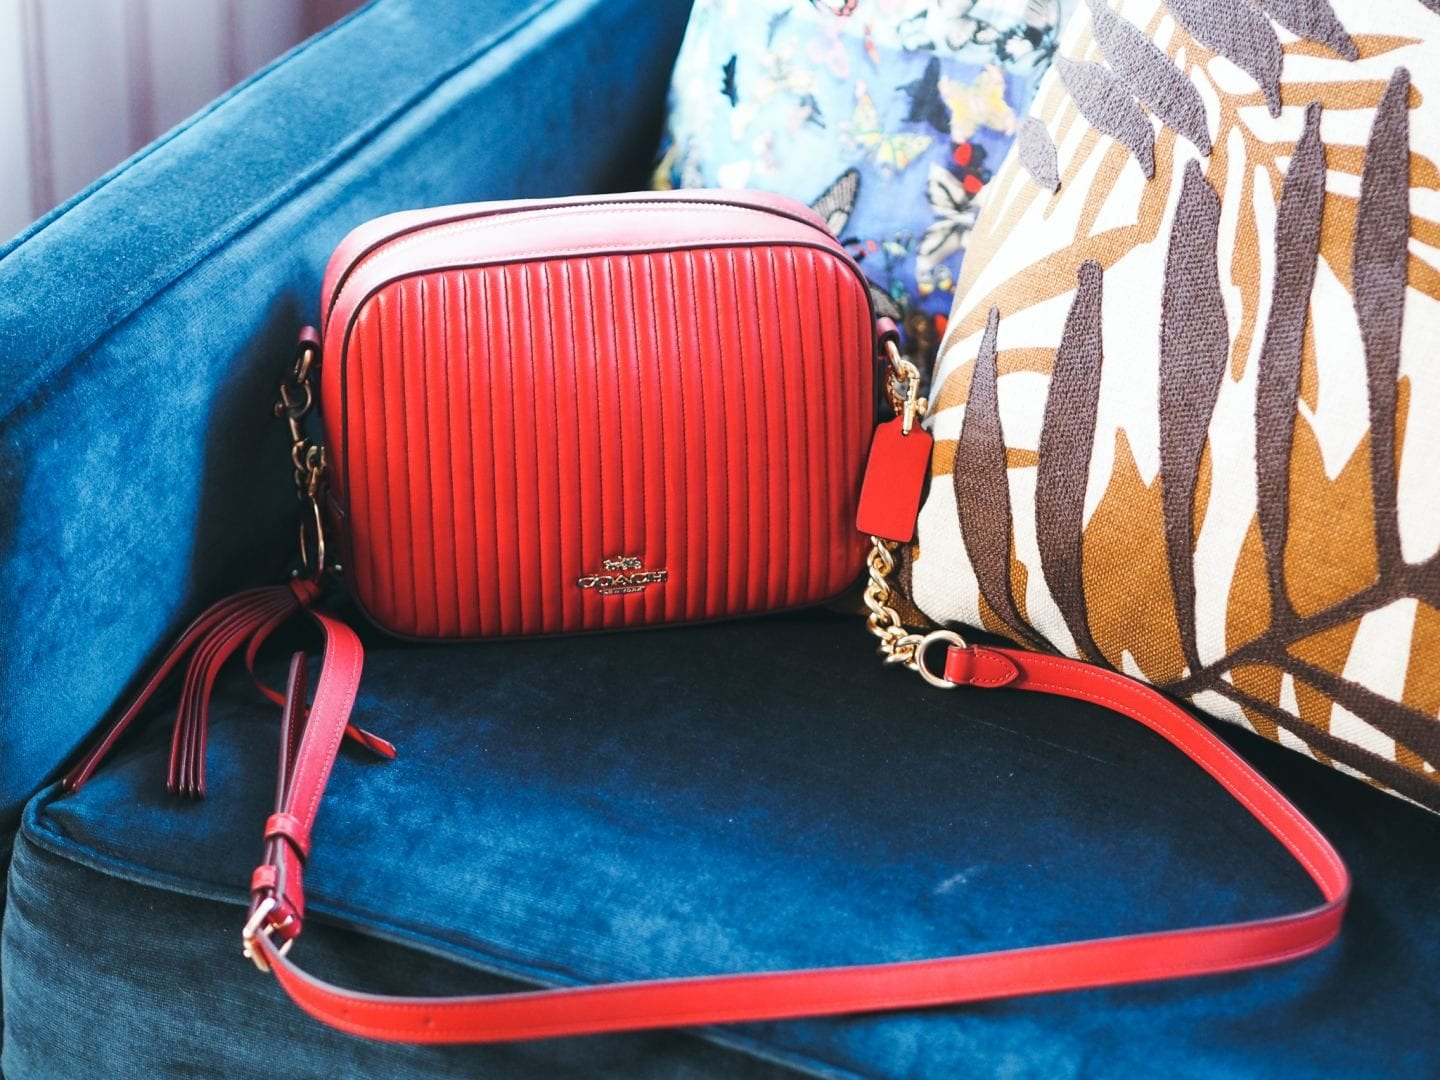 Coach Camera Bag handbag red leather quilted review strap hardwear price